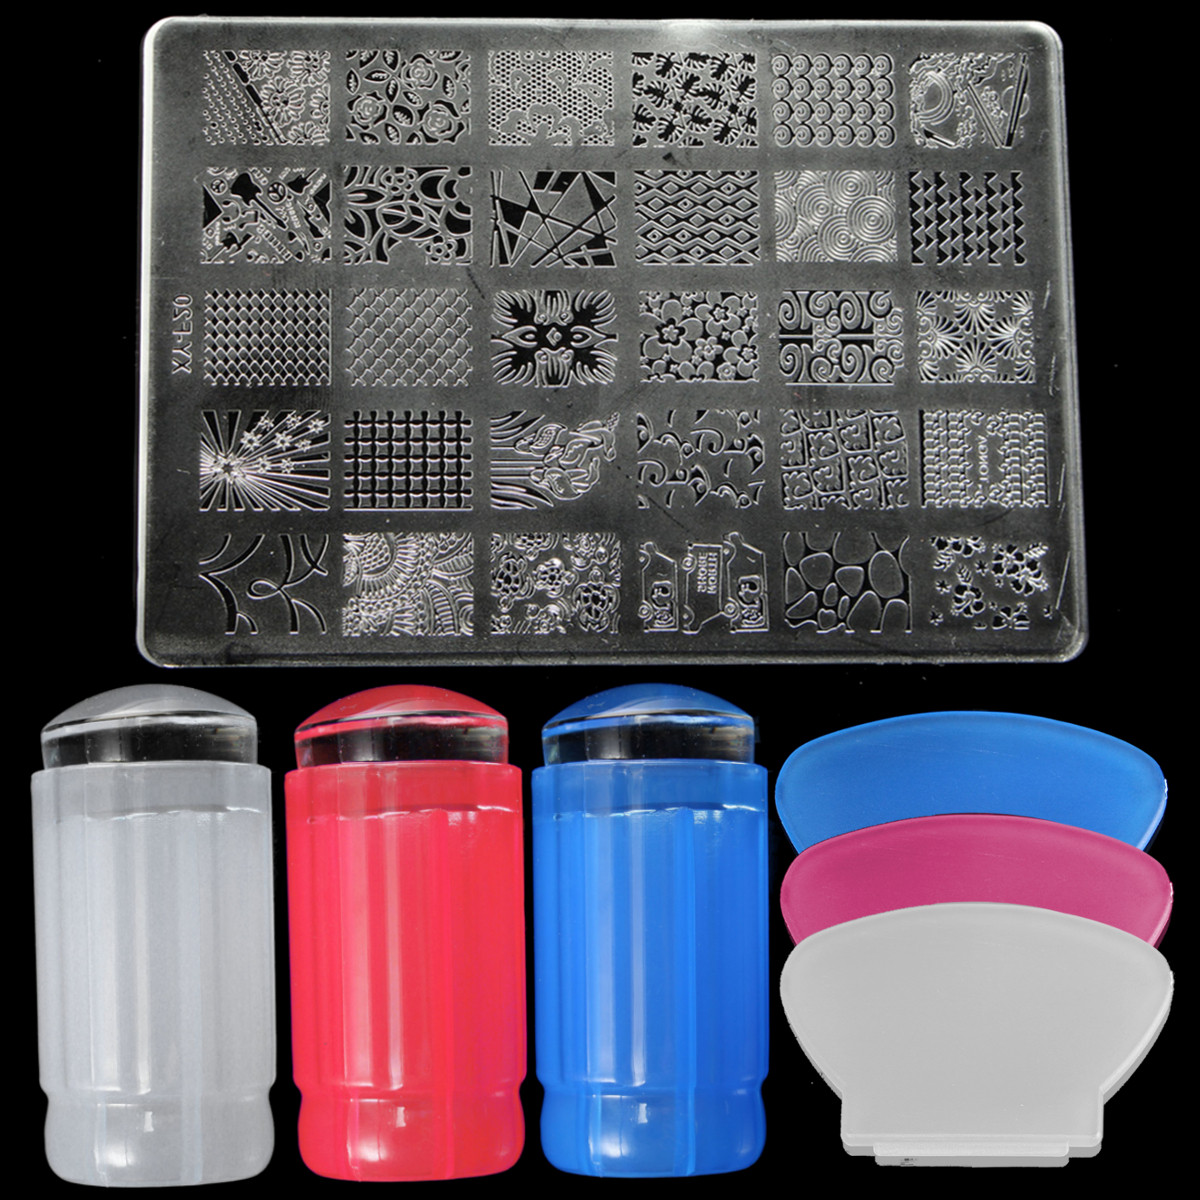 DANCINGNAIL Nail Art Stamping Stamper Kit With Image Plate Scraper Manicure Tool Set